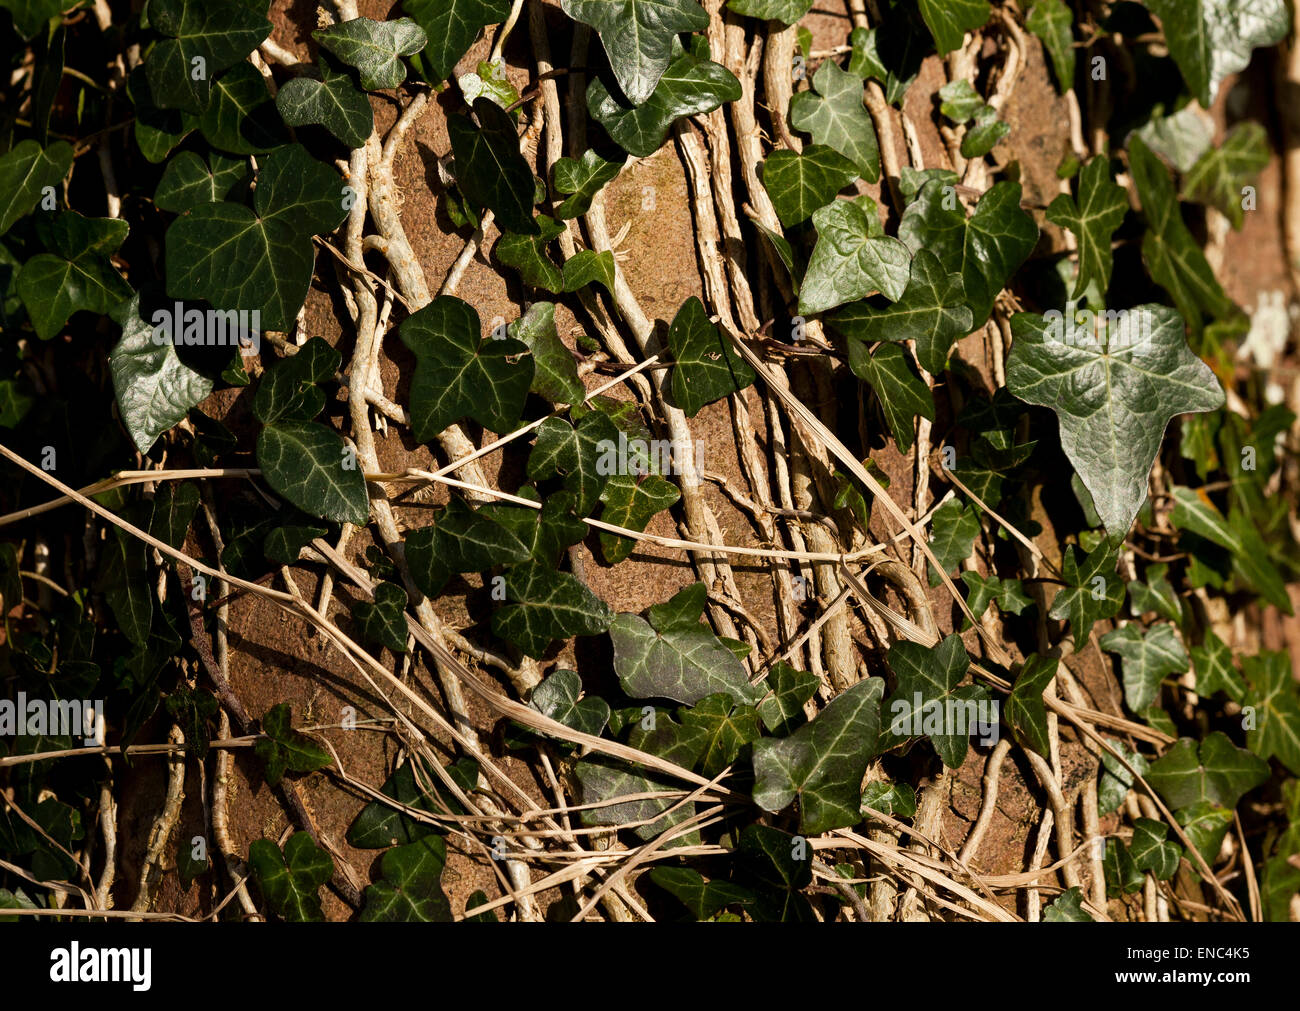 Ivy stems and leaves growing on a tree trunk - Stock Image